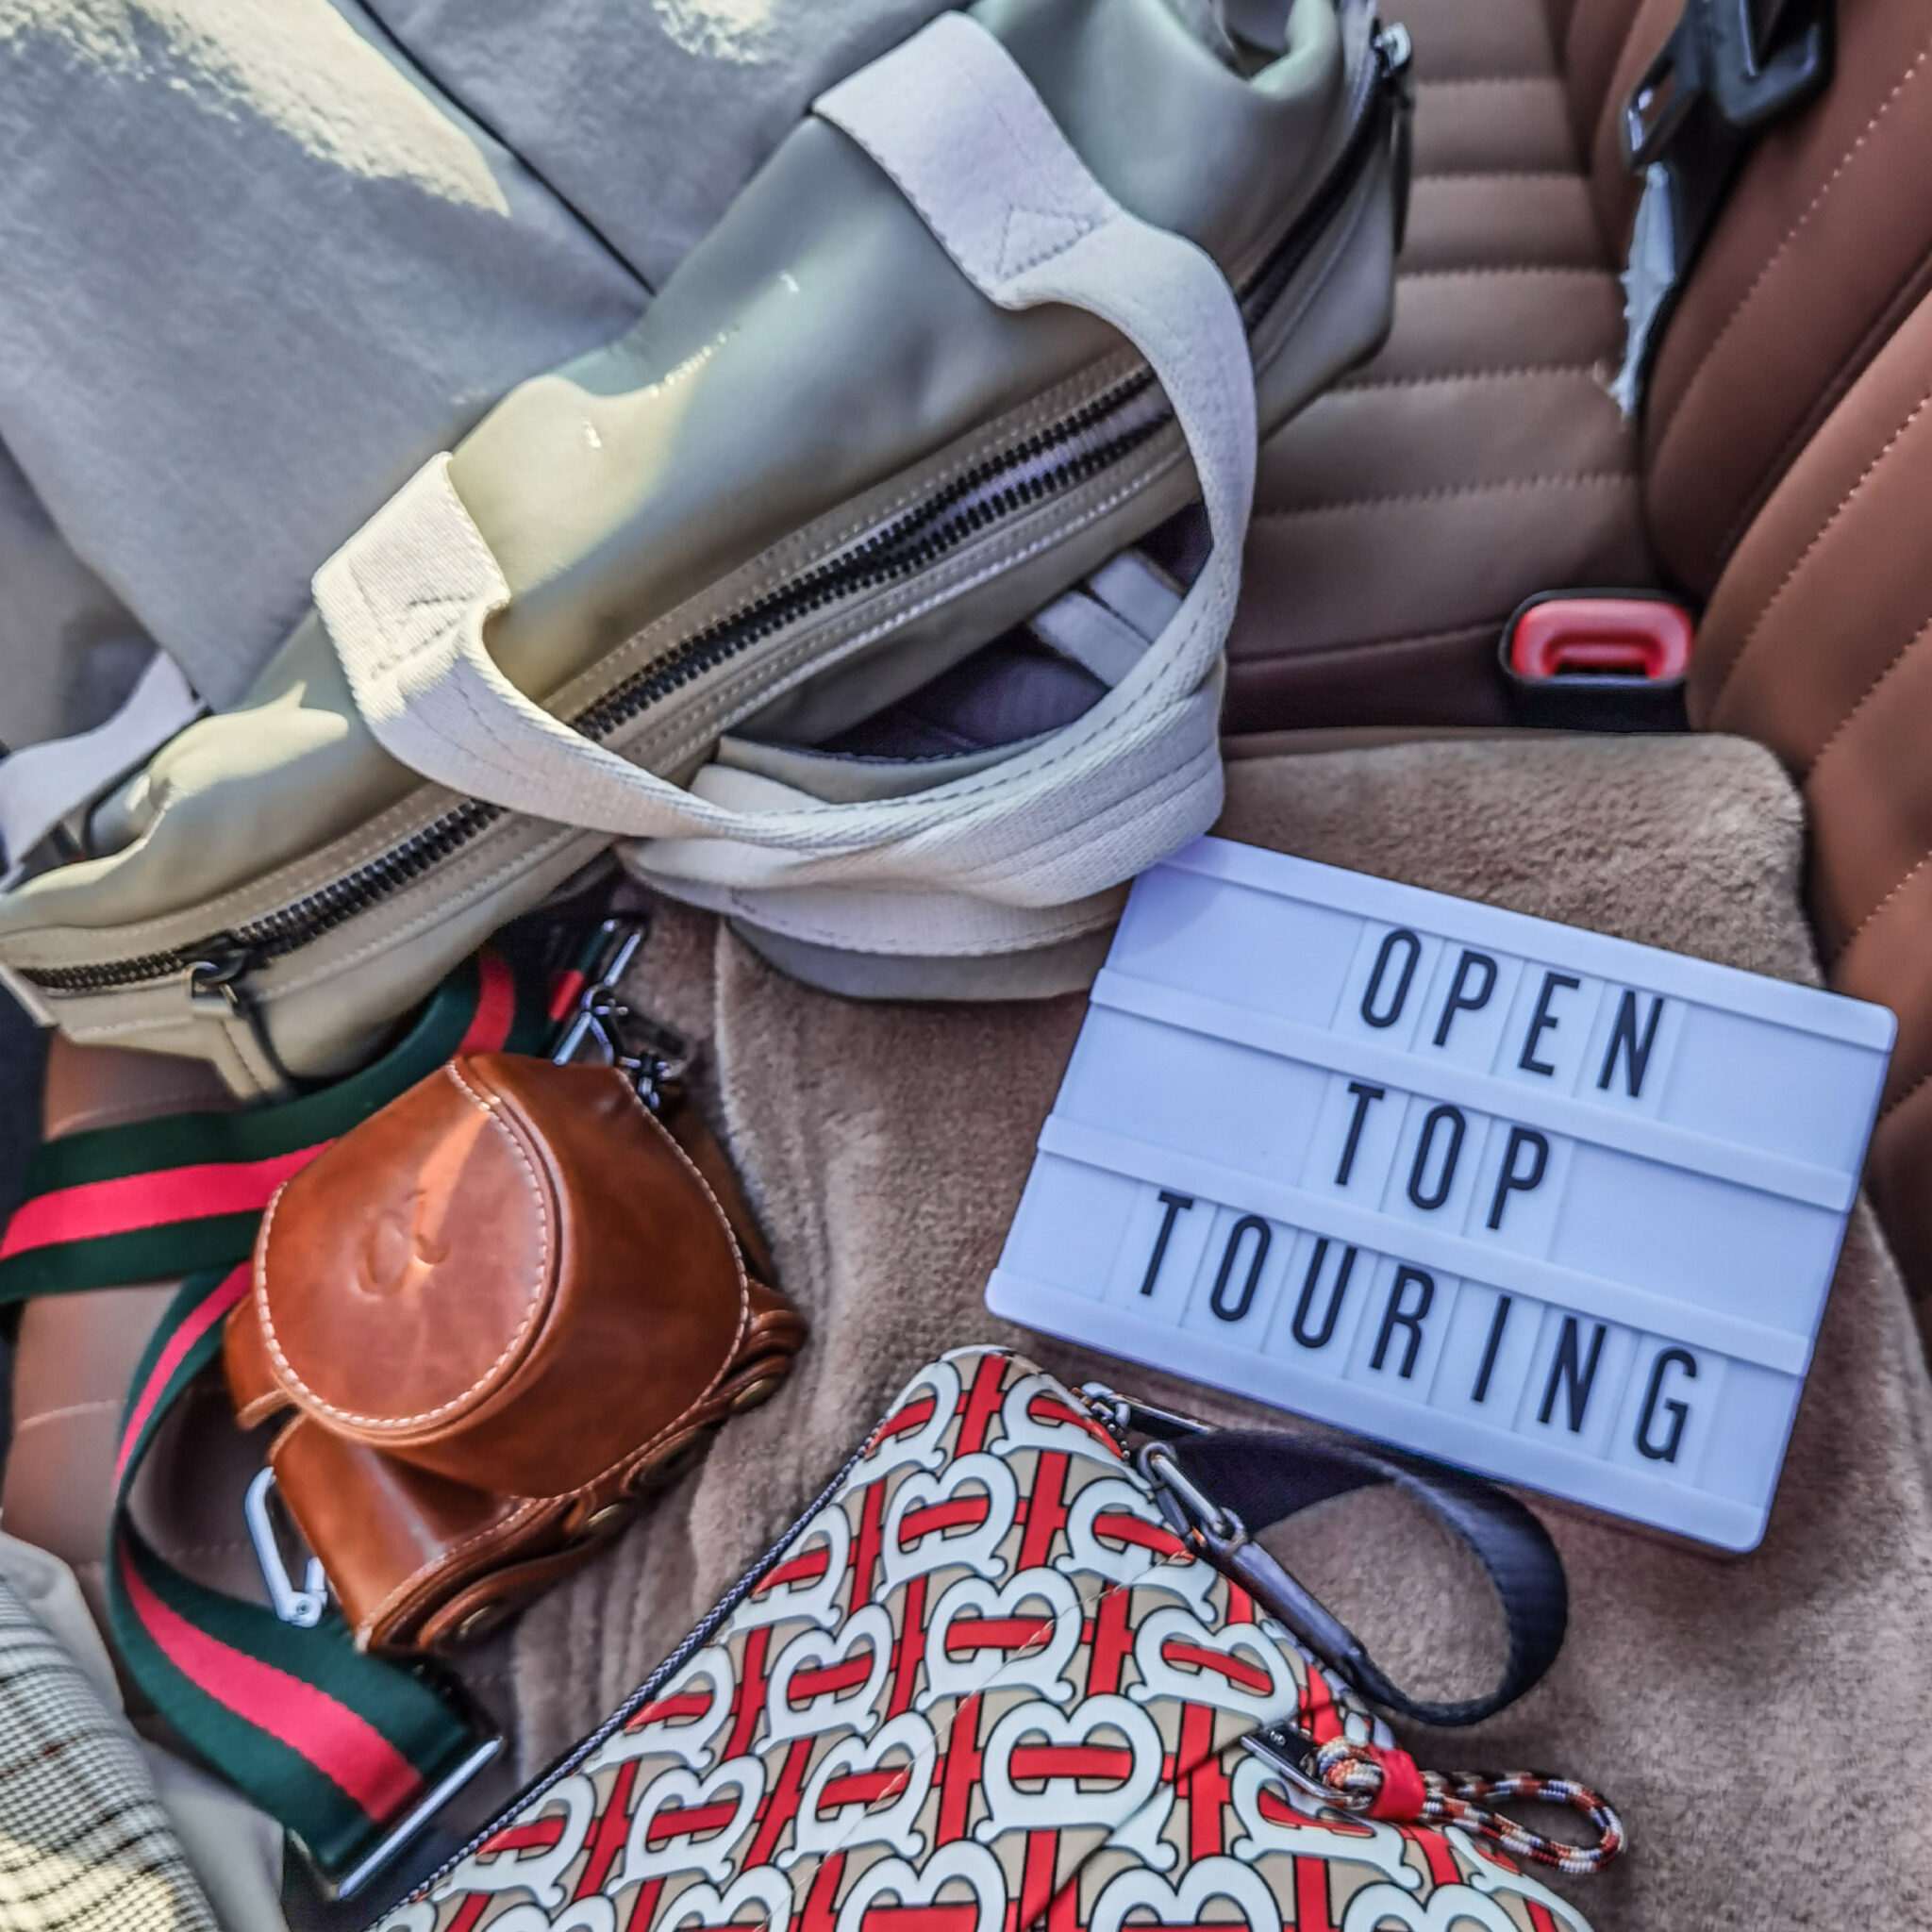 Mount Royal Hotel - Pursuit - Banff - Canadian Rockies - Open Top Touring - Car Flatlay